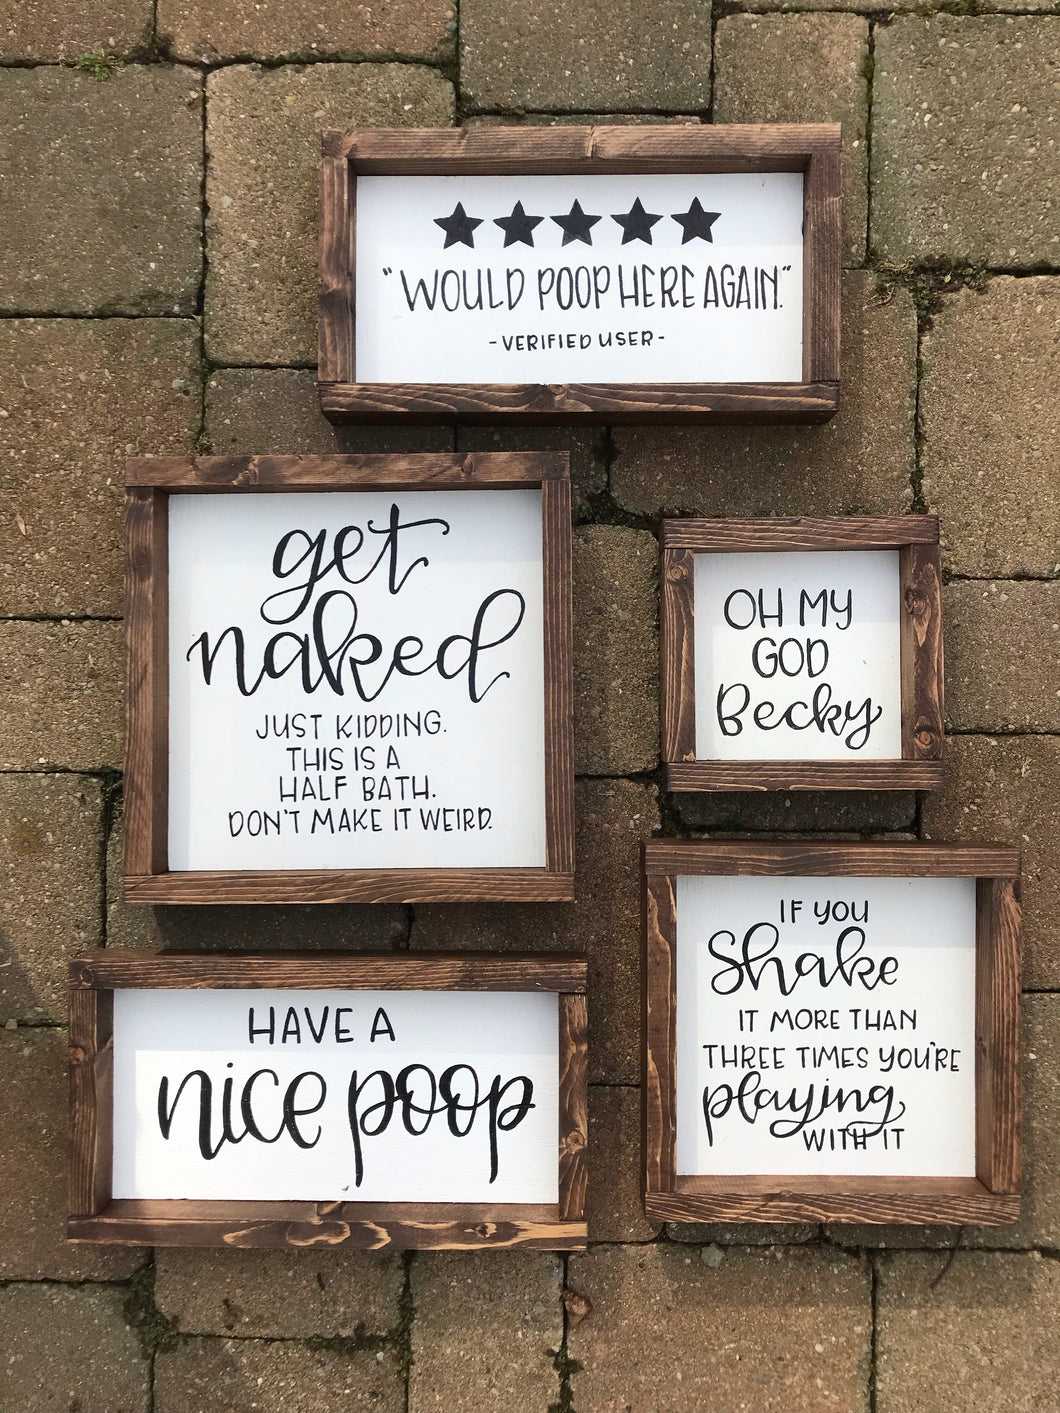 Get naked- bathroom sign